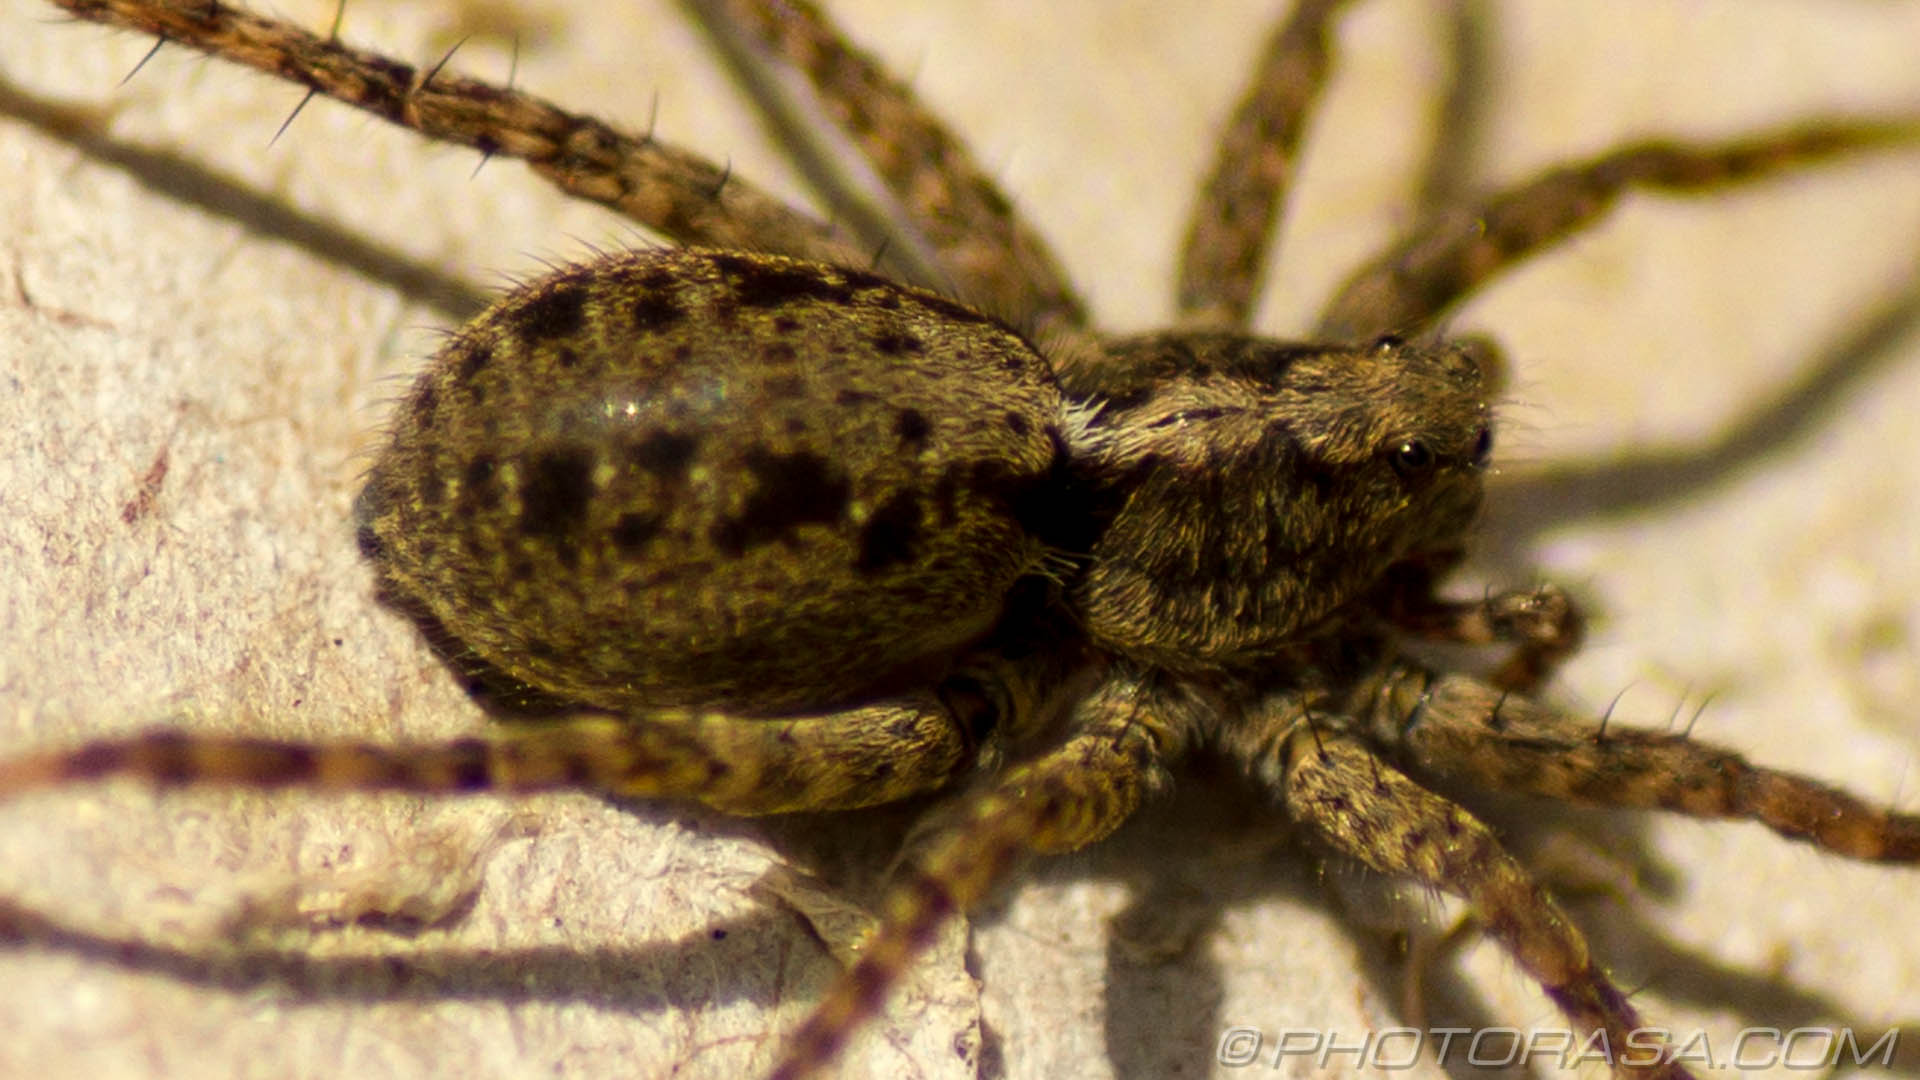 http://photorasa.com/wolf-spiders/hairy-wolf-spider-close-up/